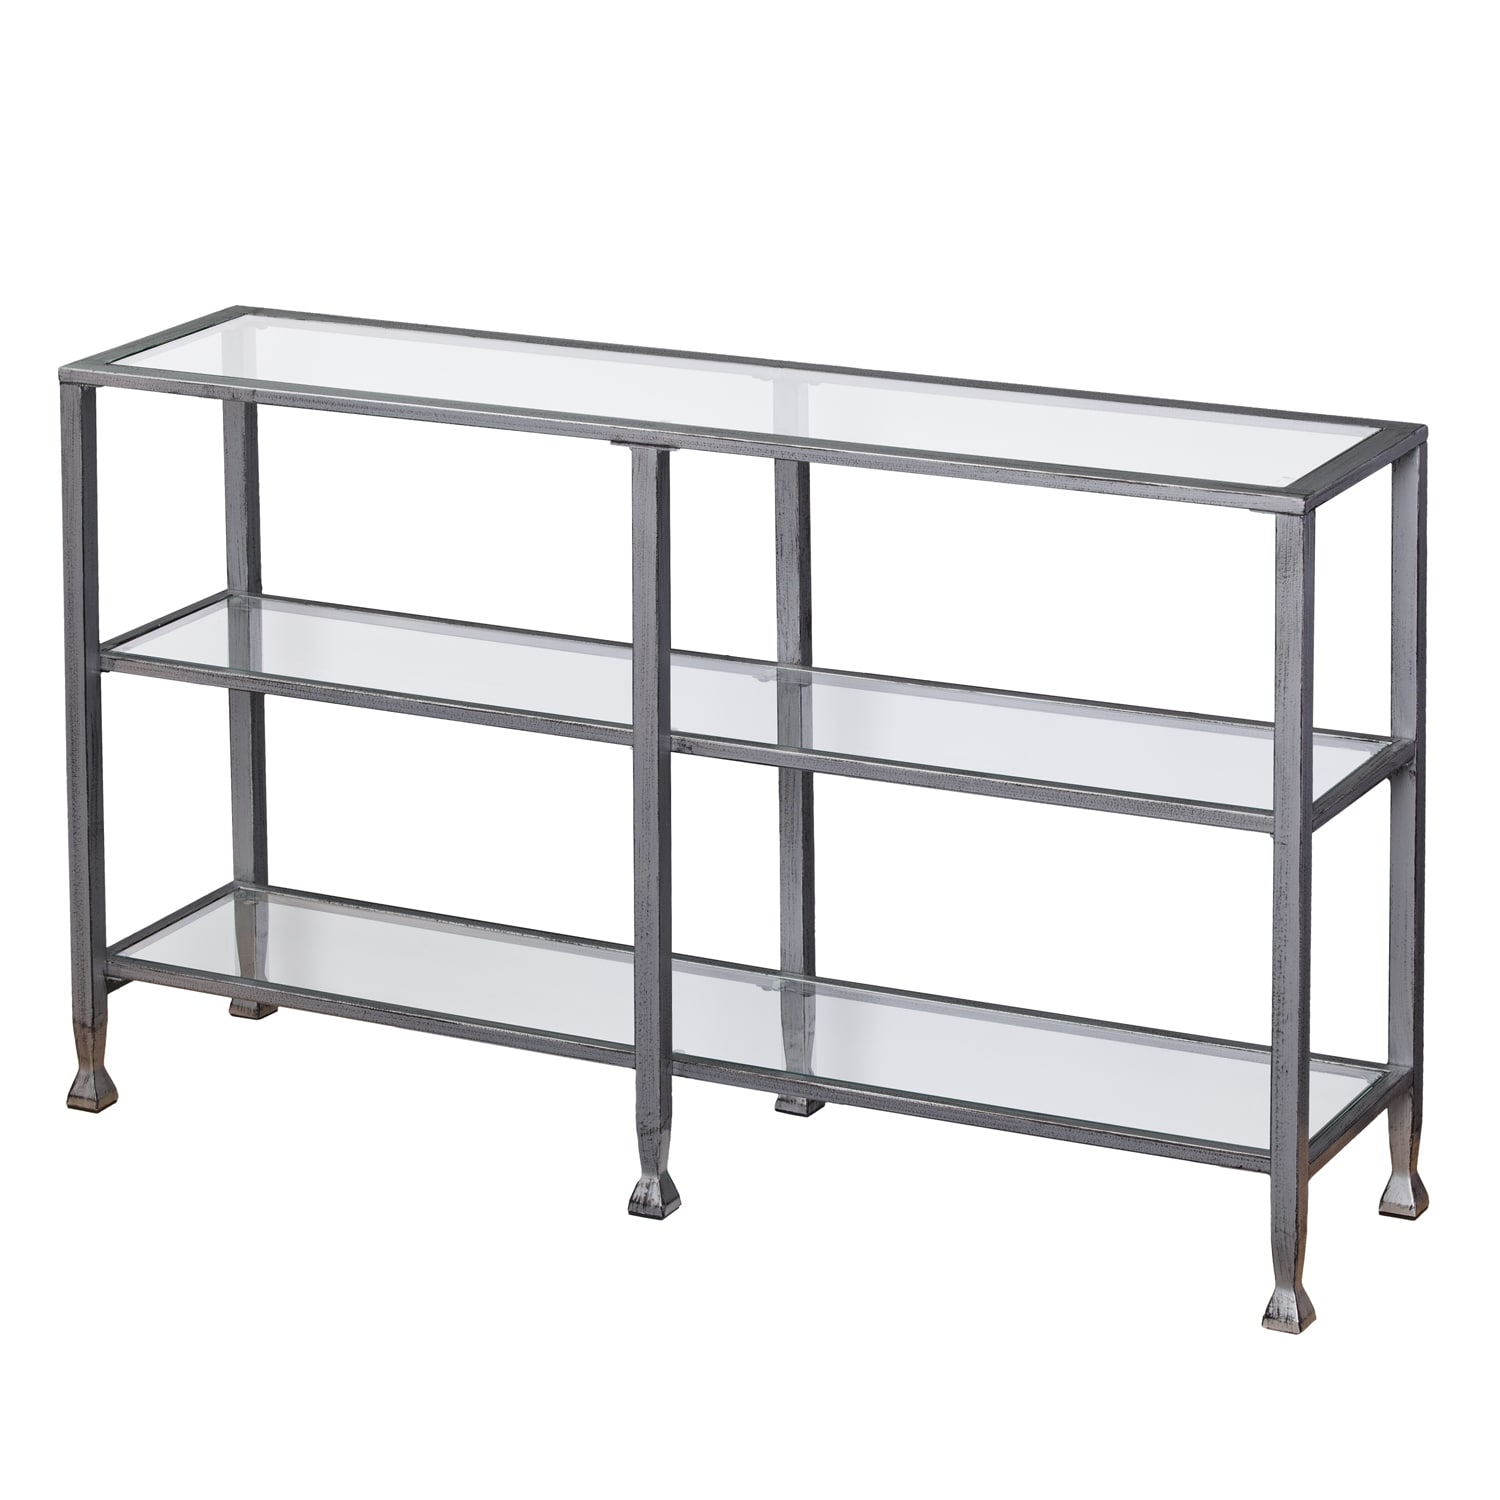 Porch U0026 Den RiNo Brighton Metal/ Glass 3 Tier Console Table   Free Shipping  Today   Overstock   21140428